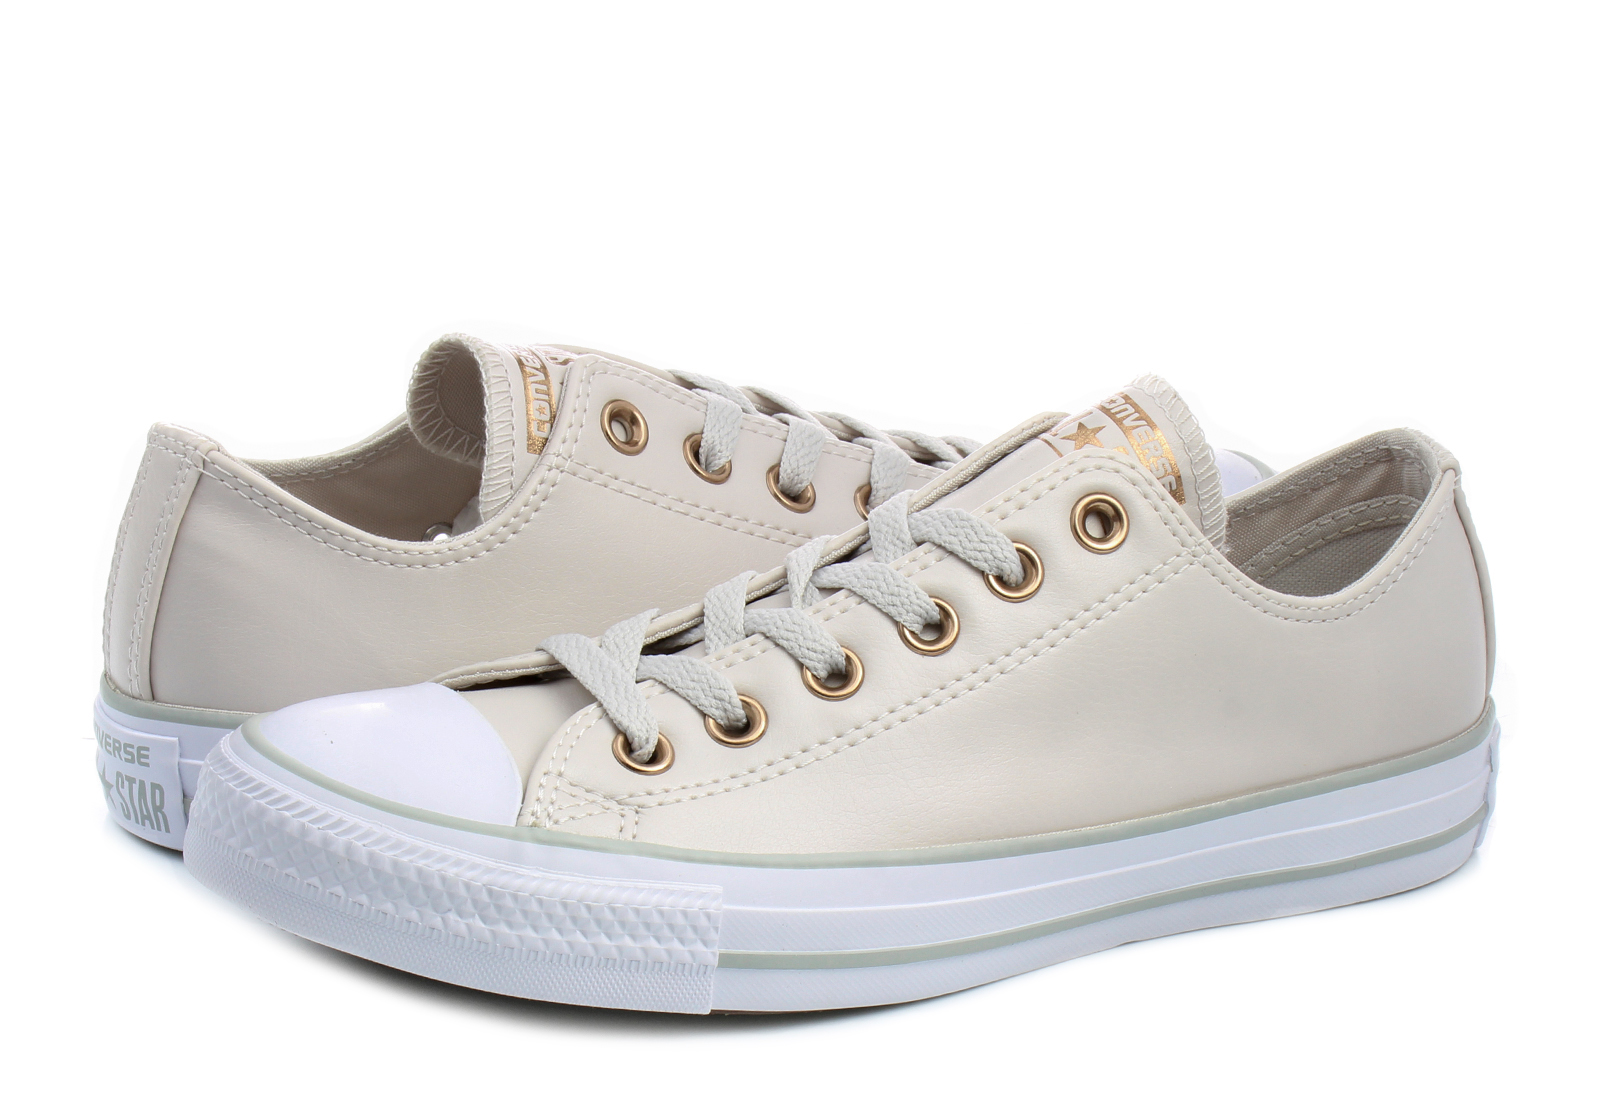 656121078318 Converse Sneakers - Chuck Taylor All Star Craft Sl - 559944C ...